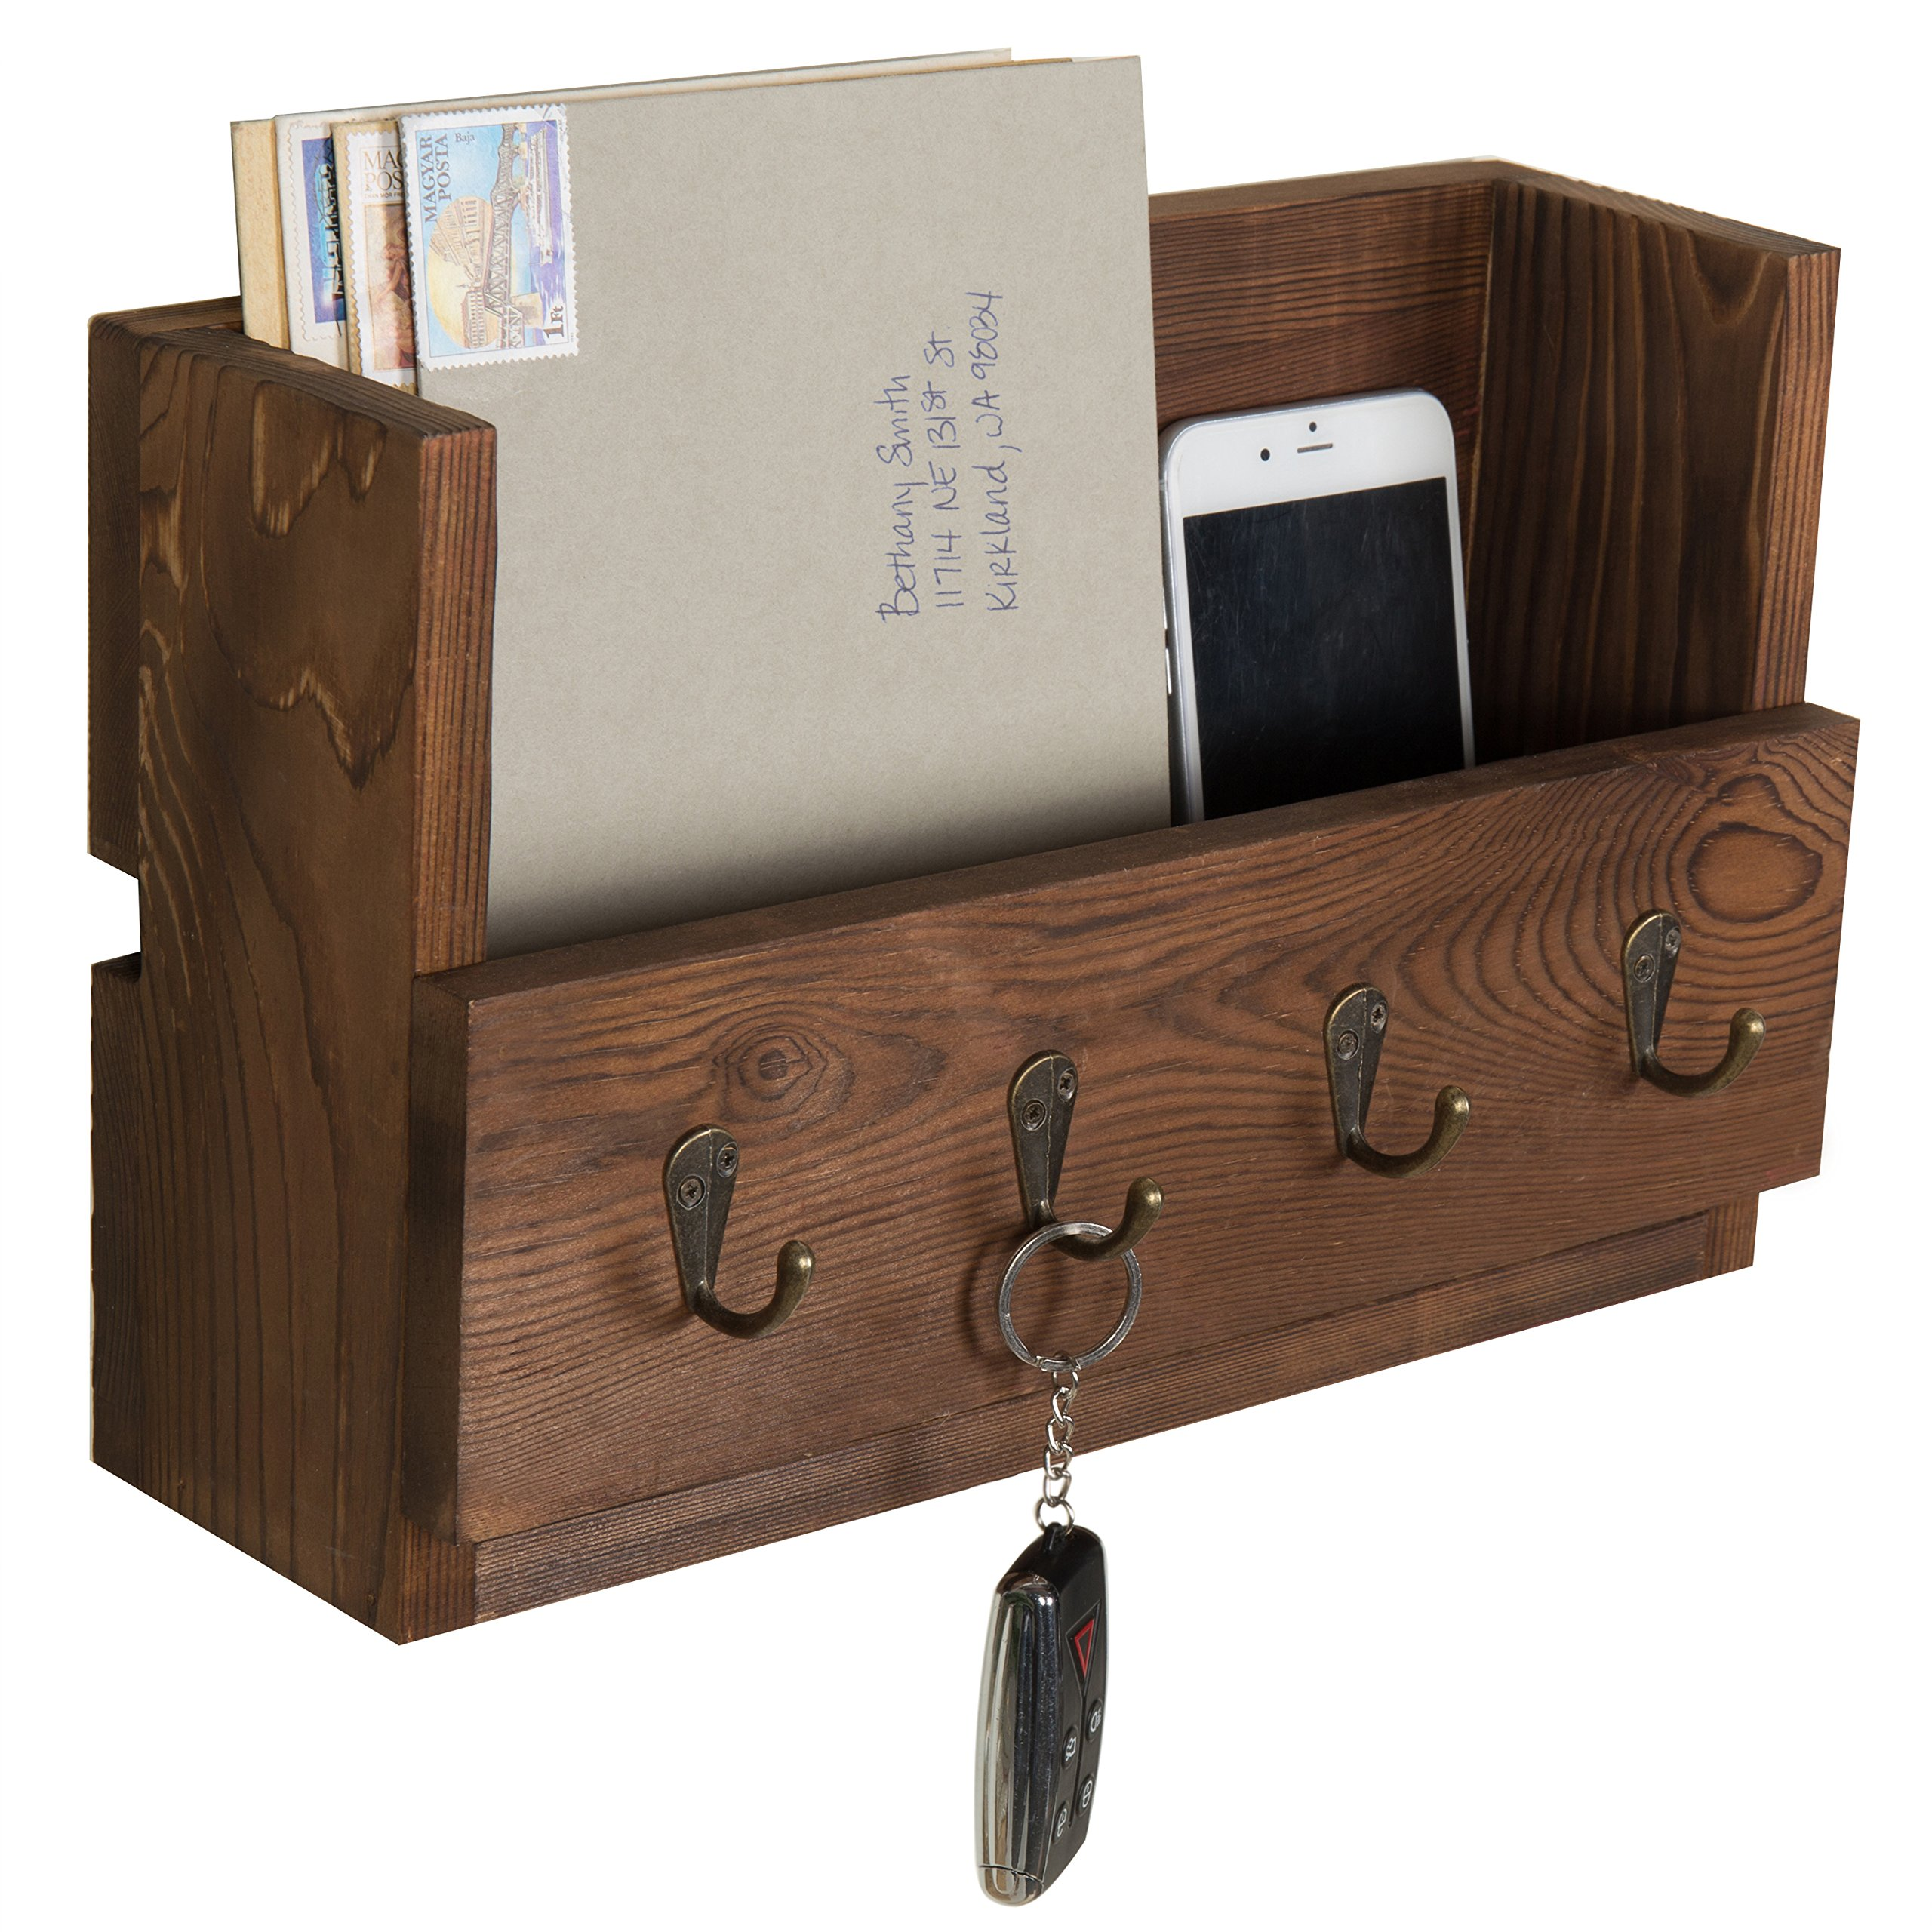 MyGift 4-Hook Rustic Wood Wall-Mounted Key & Letter Organizer Rack by MyGift